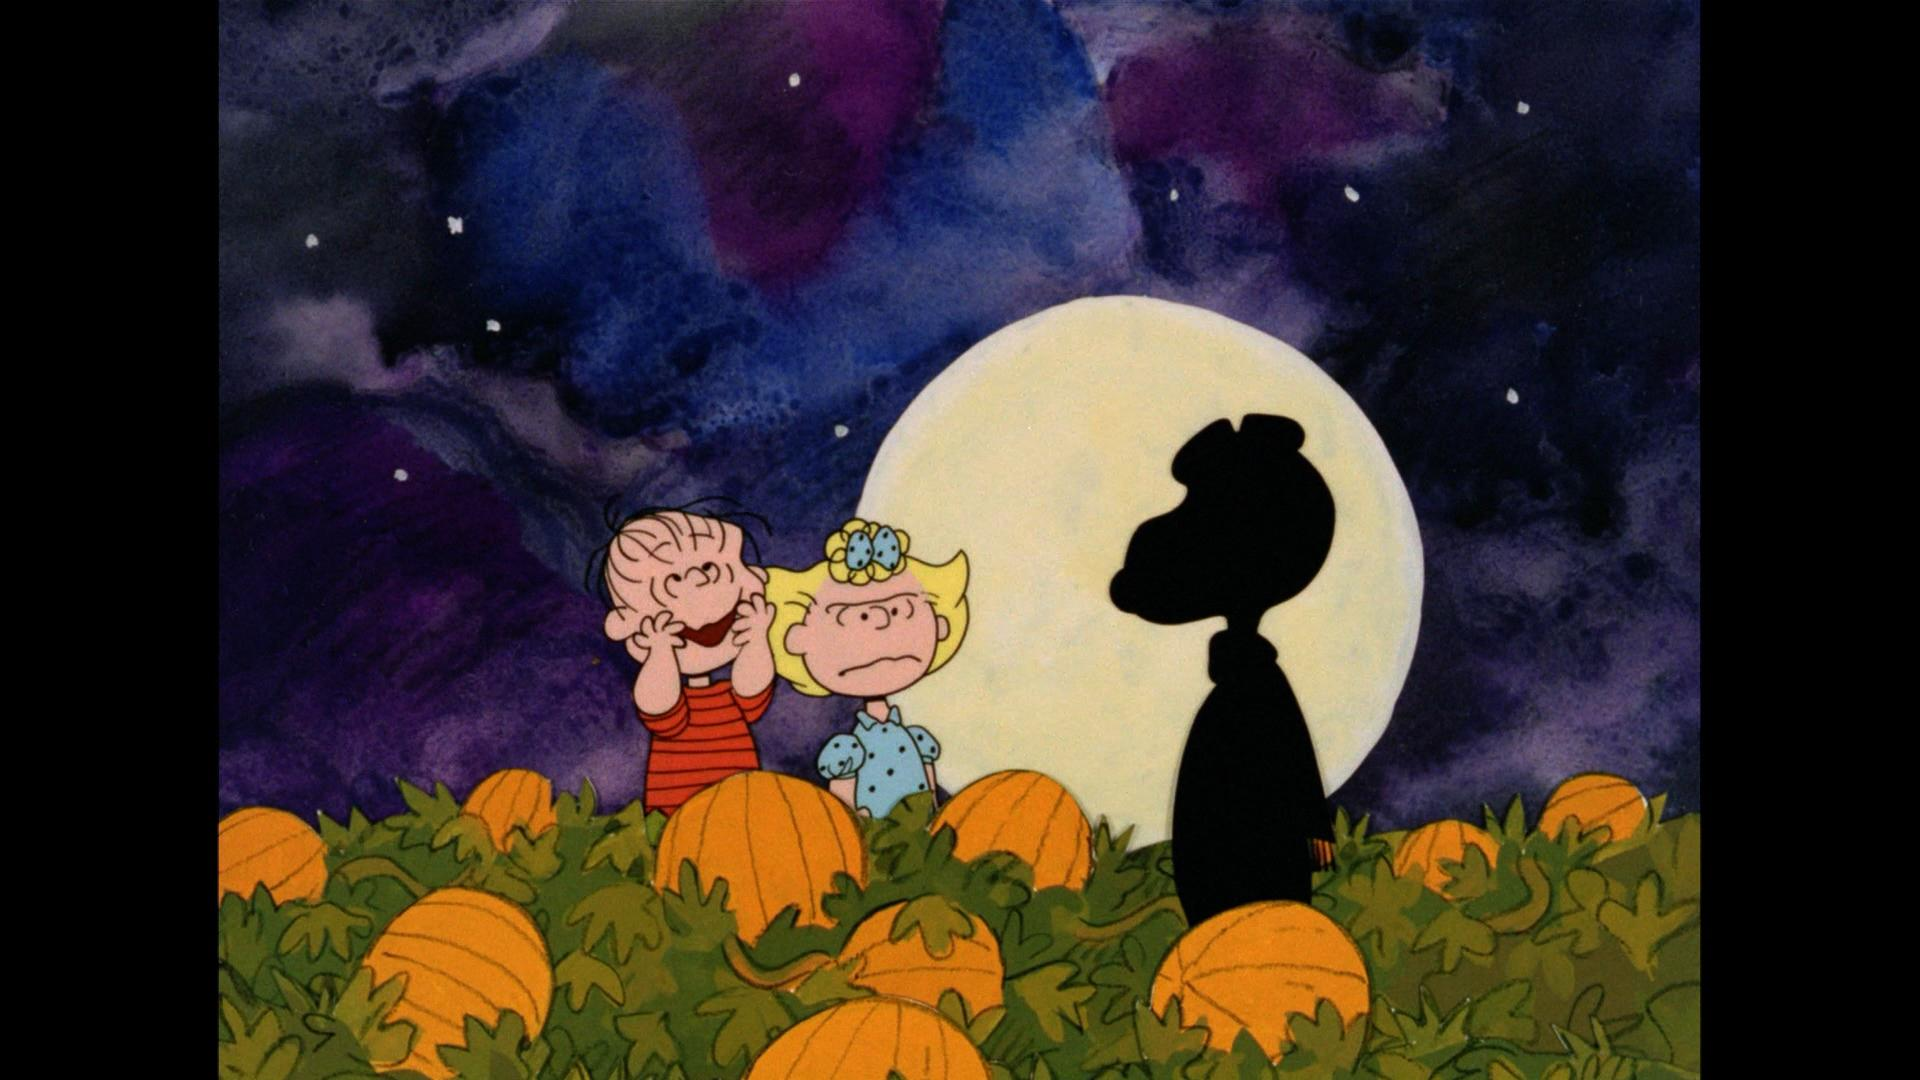 Free Snoopy Fall Wallpaper Download Great Pumpkin Charlie Brown Backgrounds Free